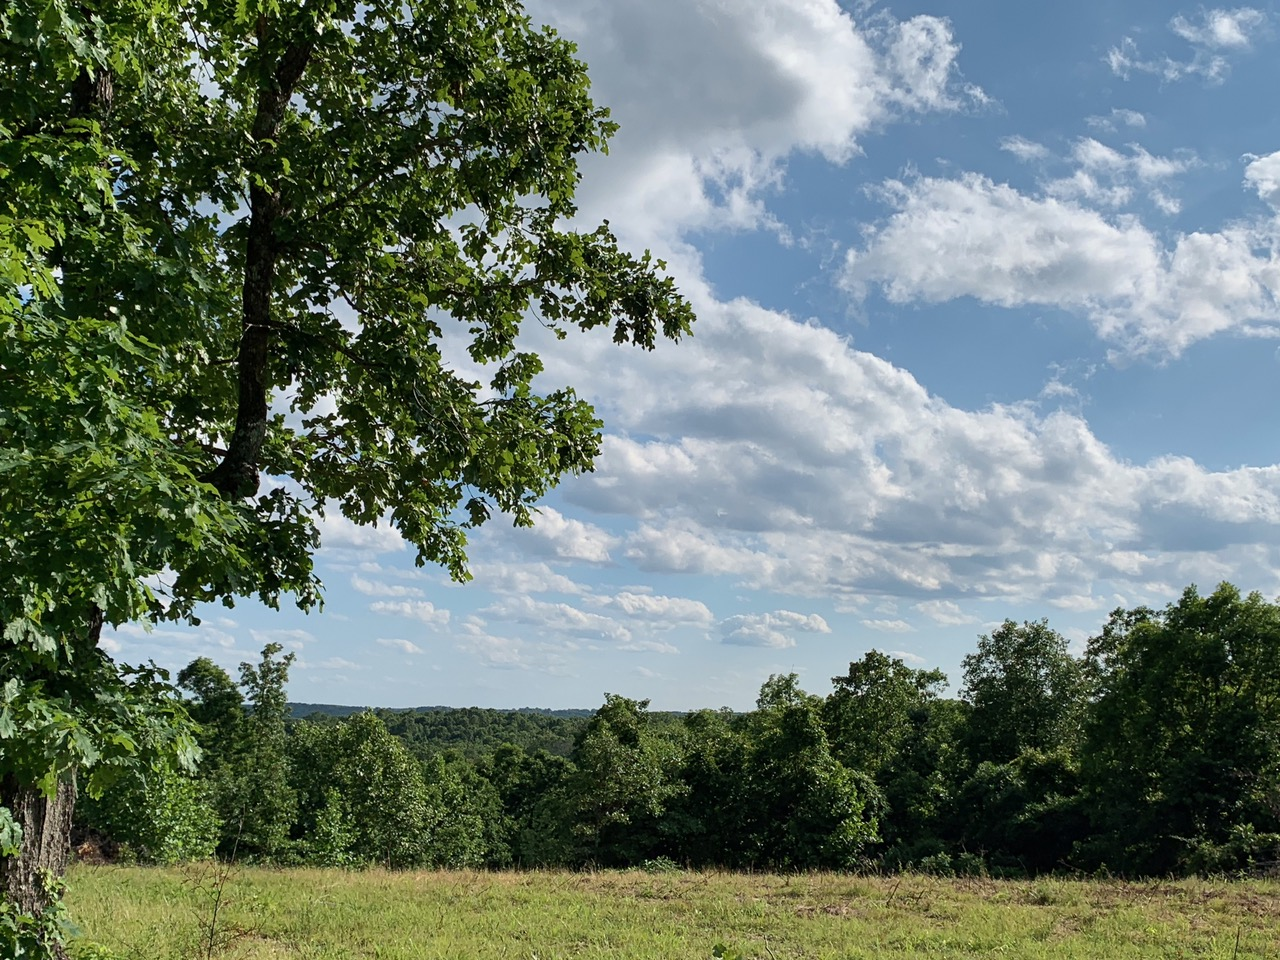 Hunting Land for Sale in Southern Missouri Ozarks